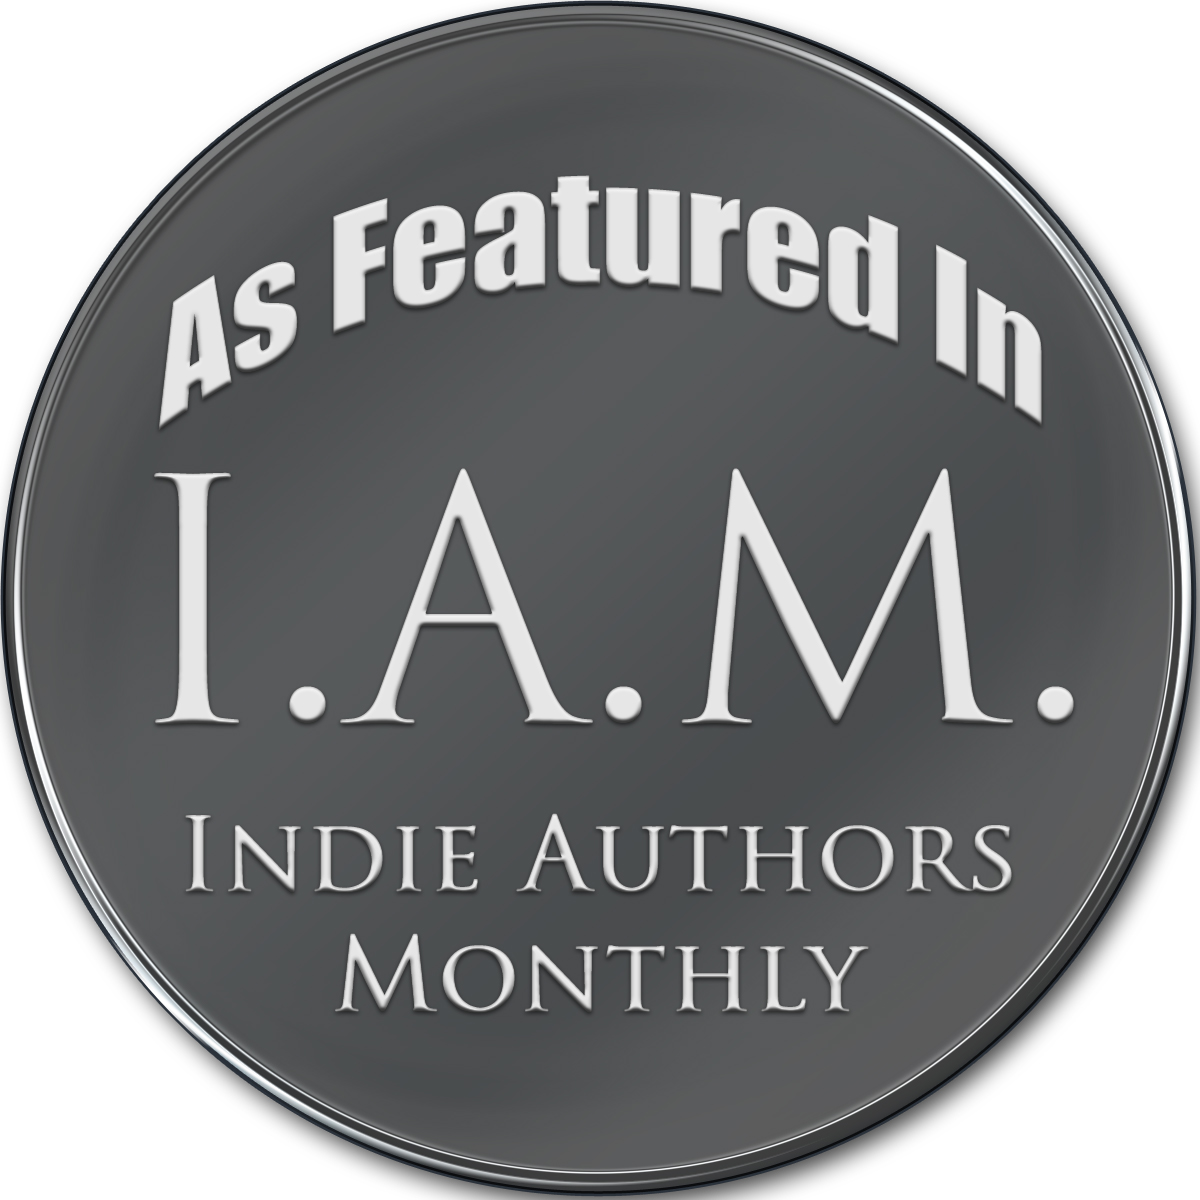 As Featured in IAM seal